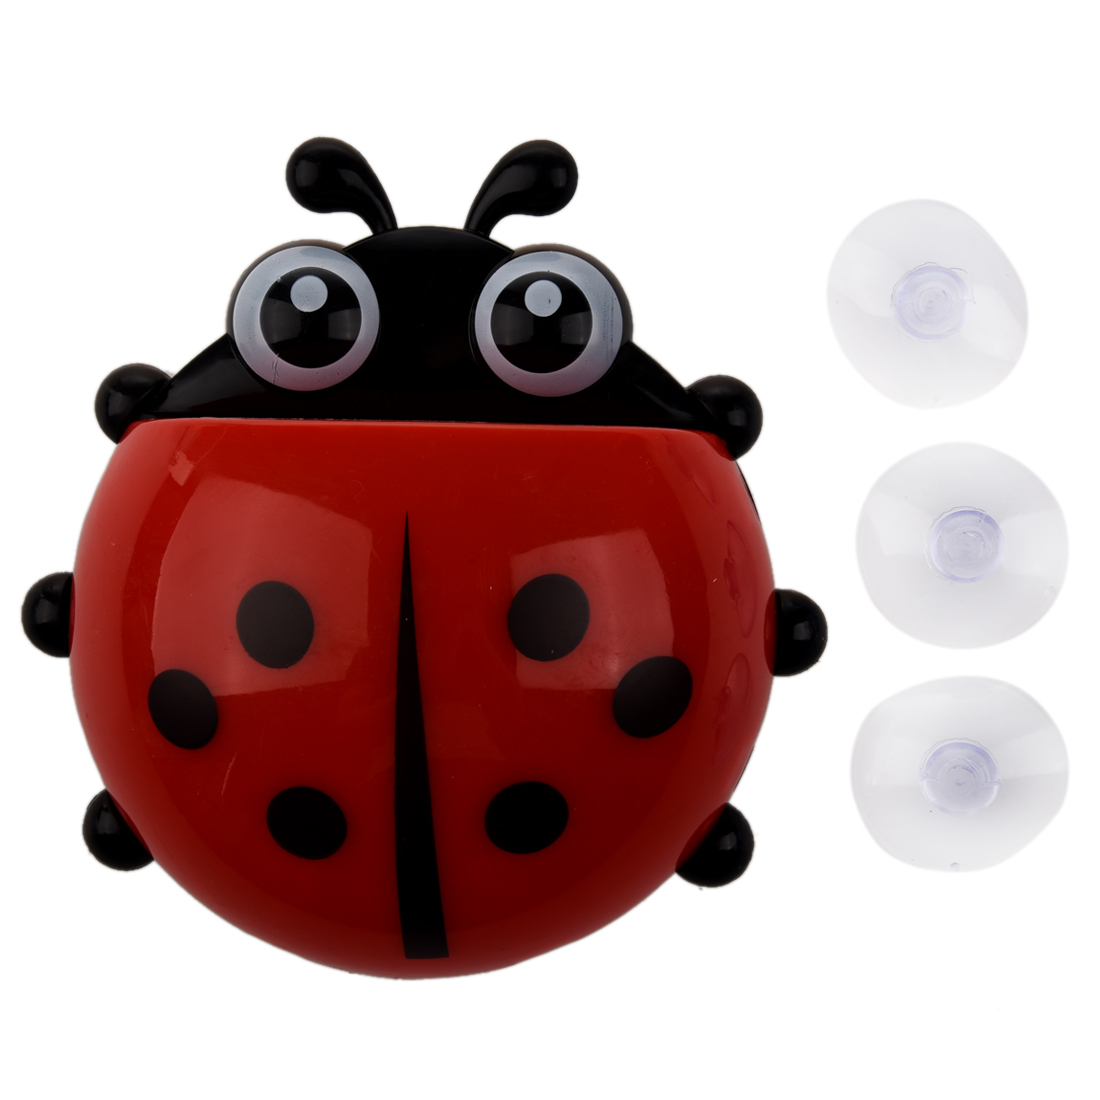 Hot Sale Convenient Bathroom Toothbrush Stuff Ladybug Wall Suction Holder image